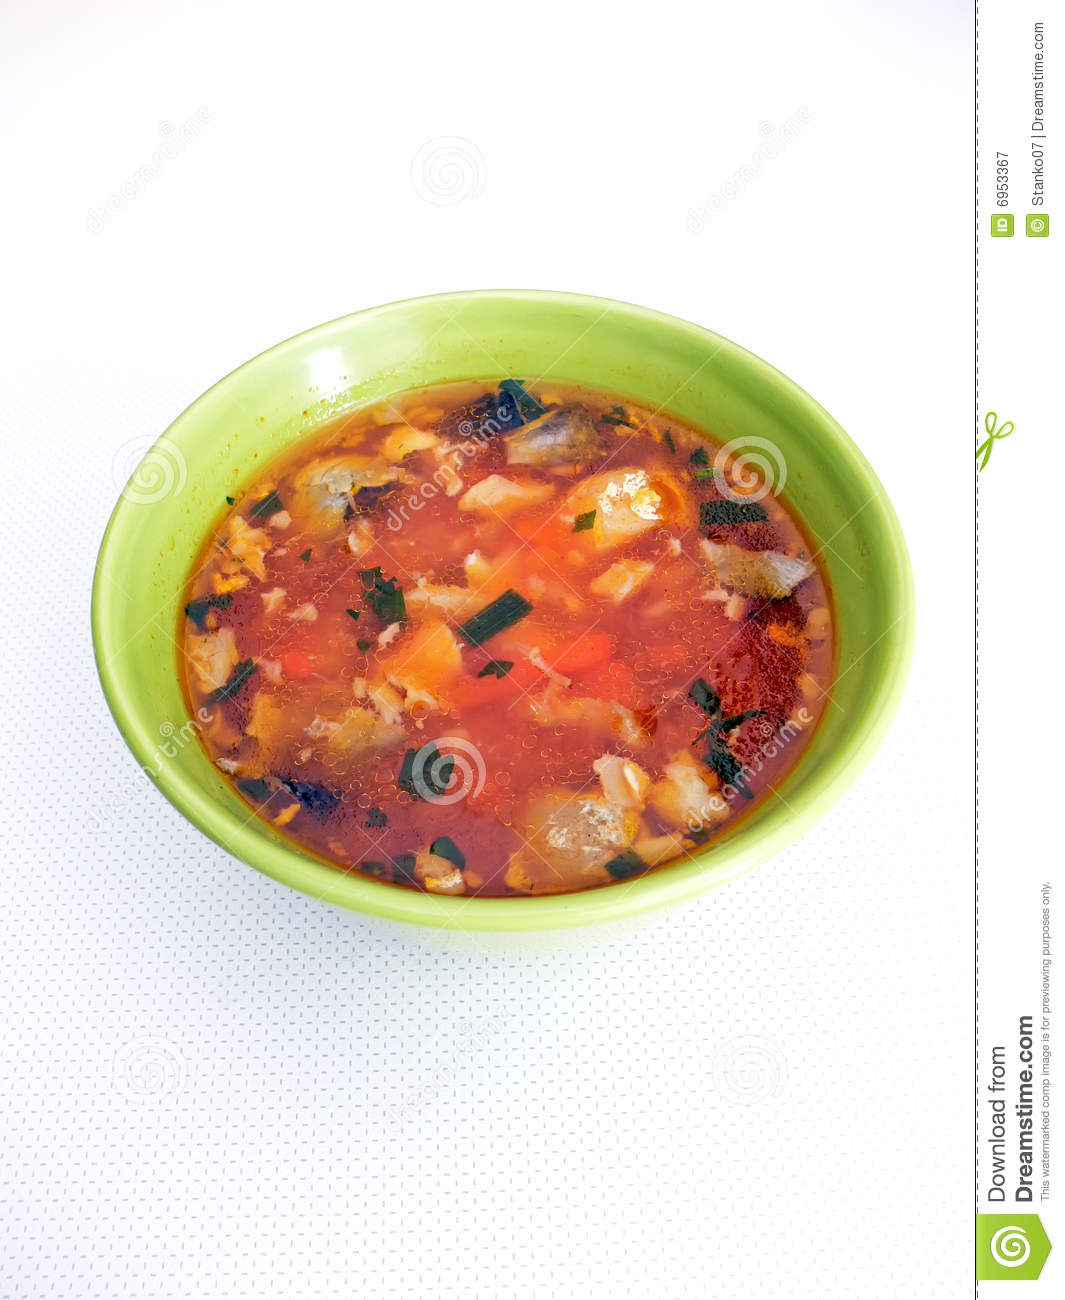 Fish soup royalty free stock photography image 6953367 for Fish soup near me